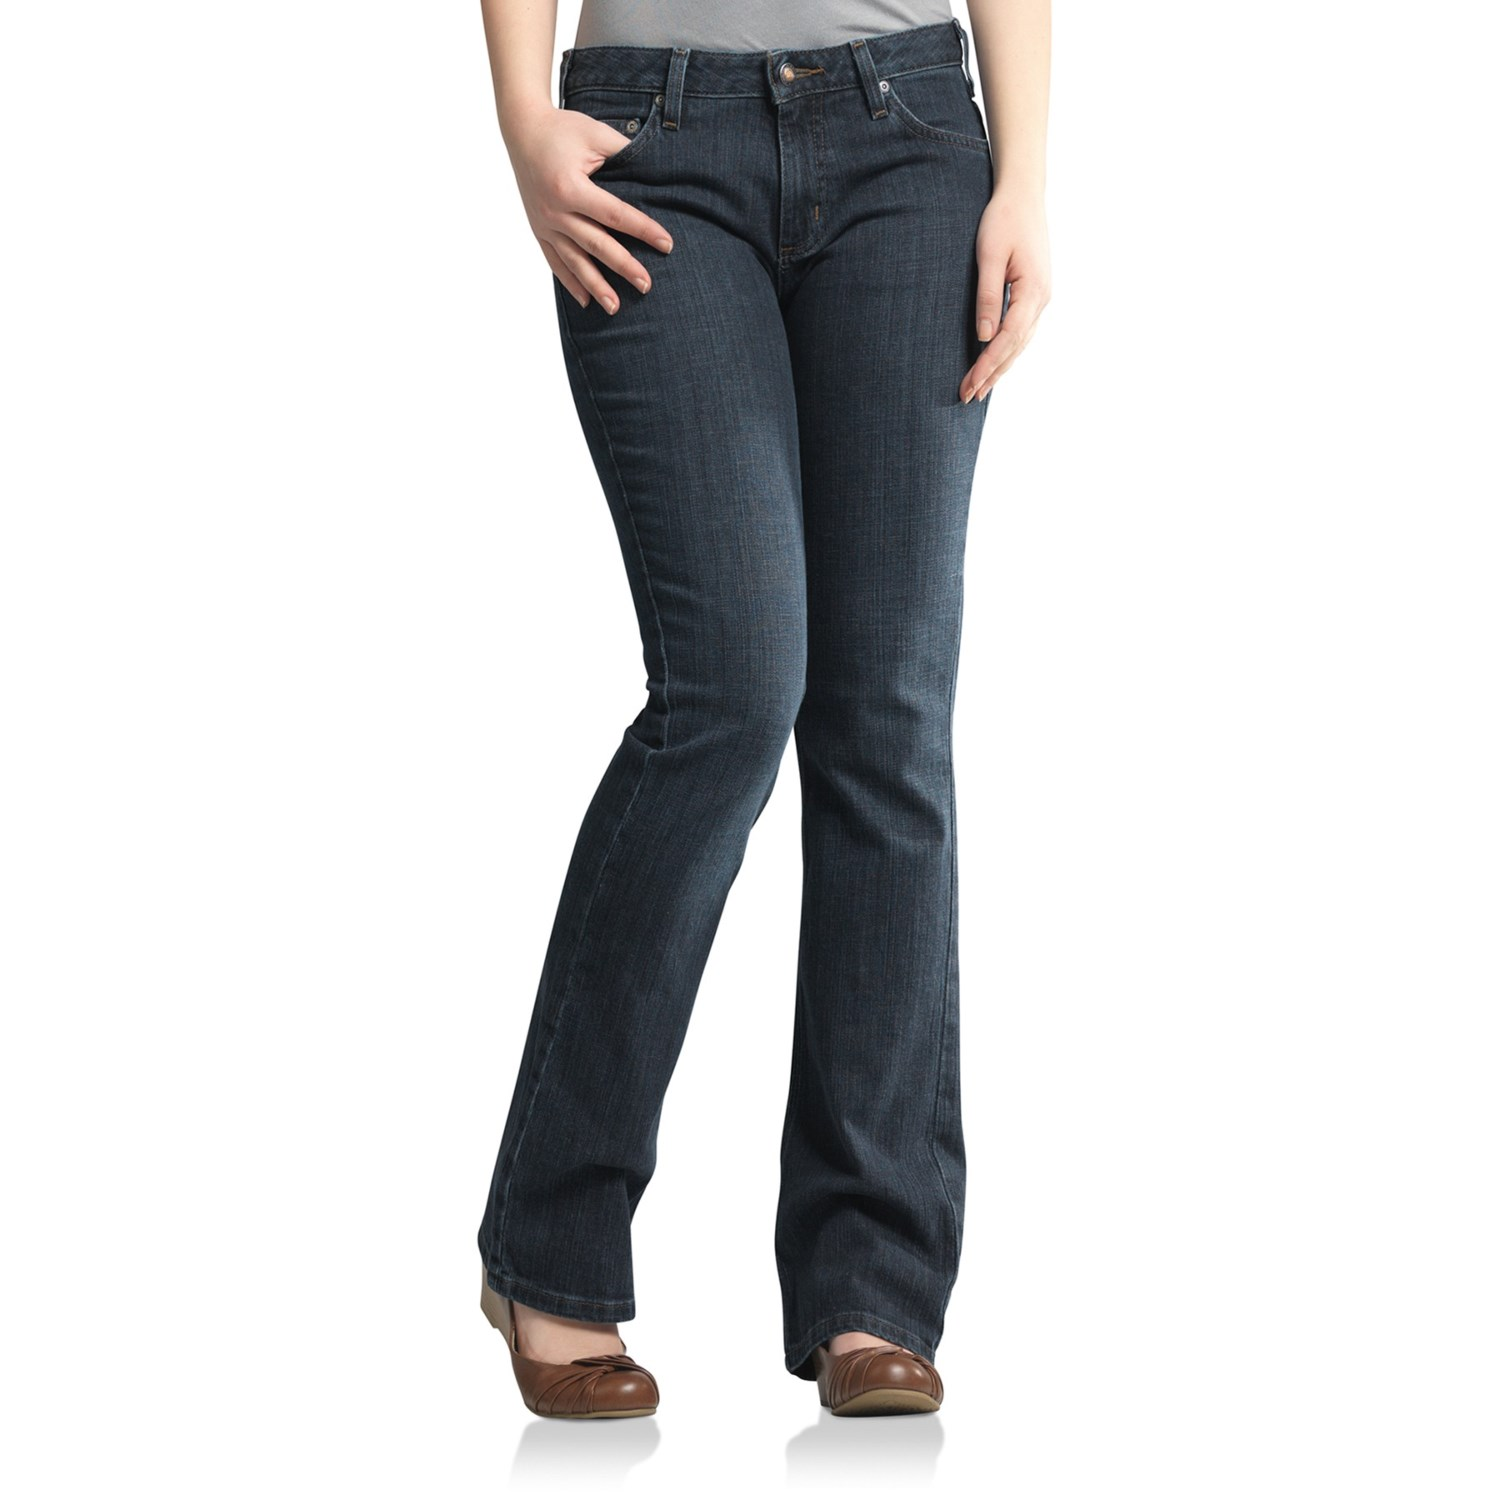 Find great deals on eBay for girls boot cut jeans. Shop with confidence.